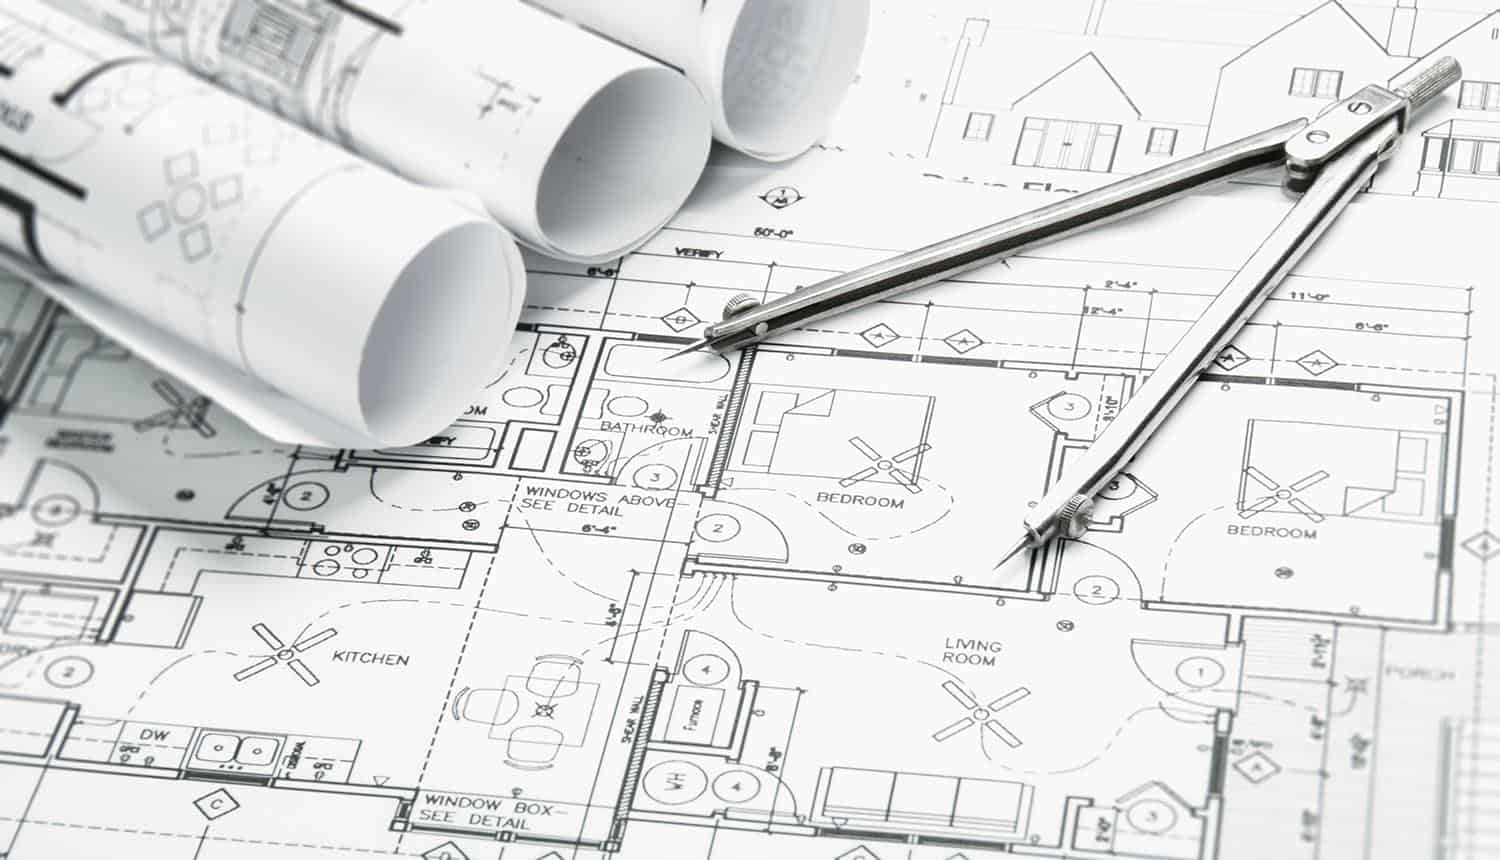 Construction blueprints showing leaked security blueprints due to ransomware attack